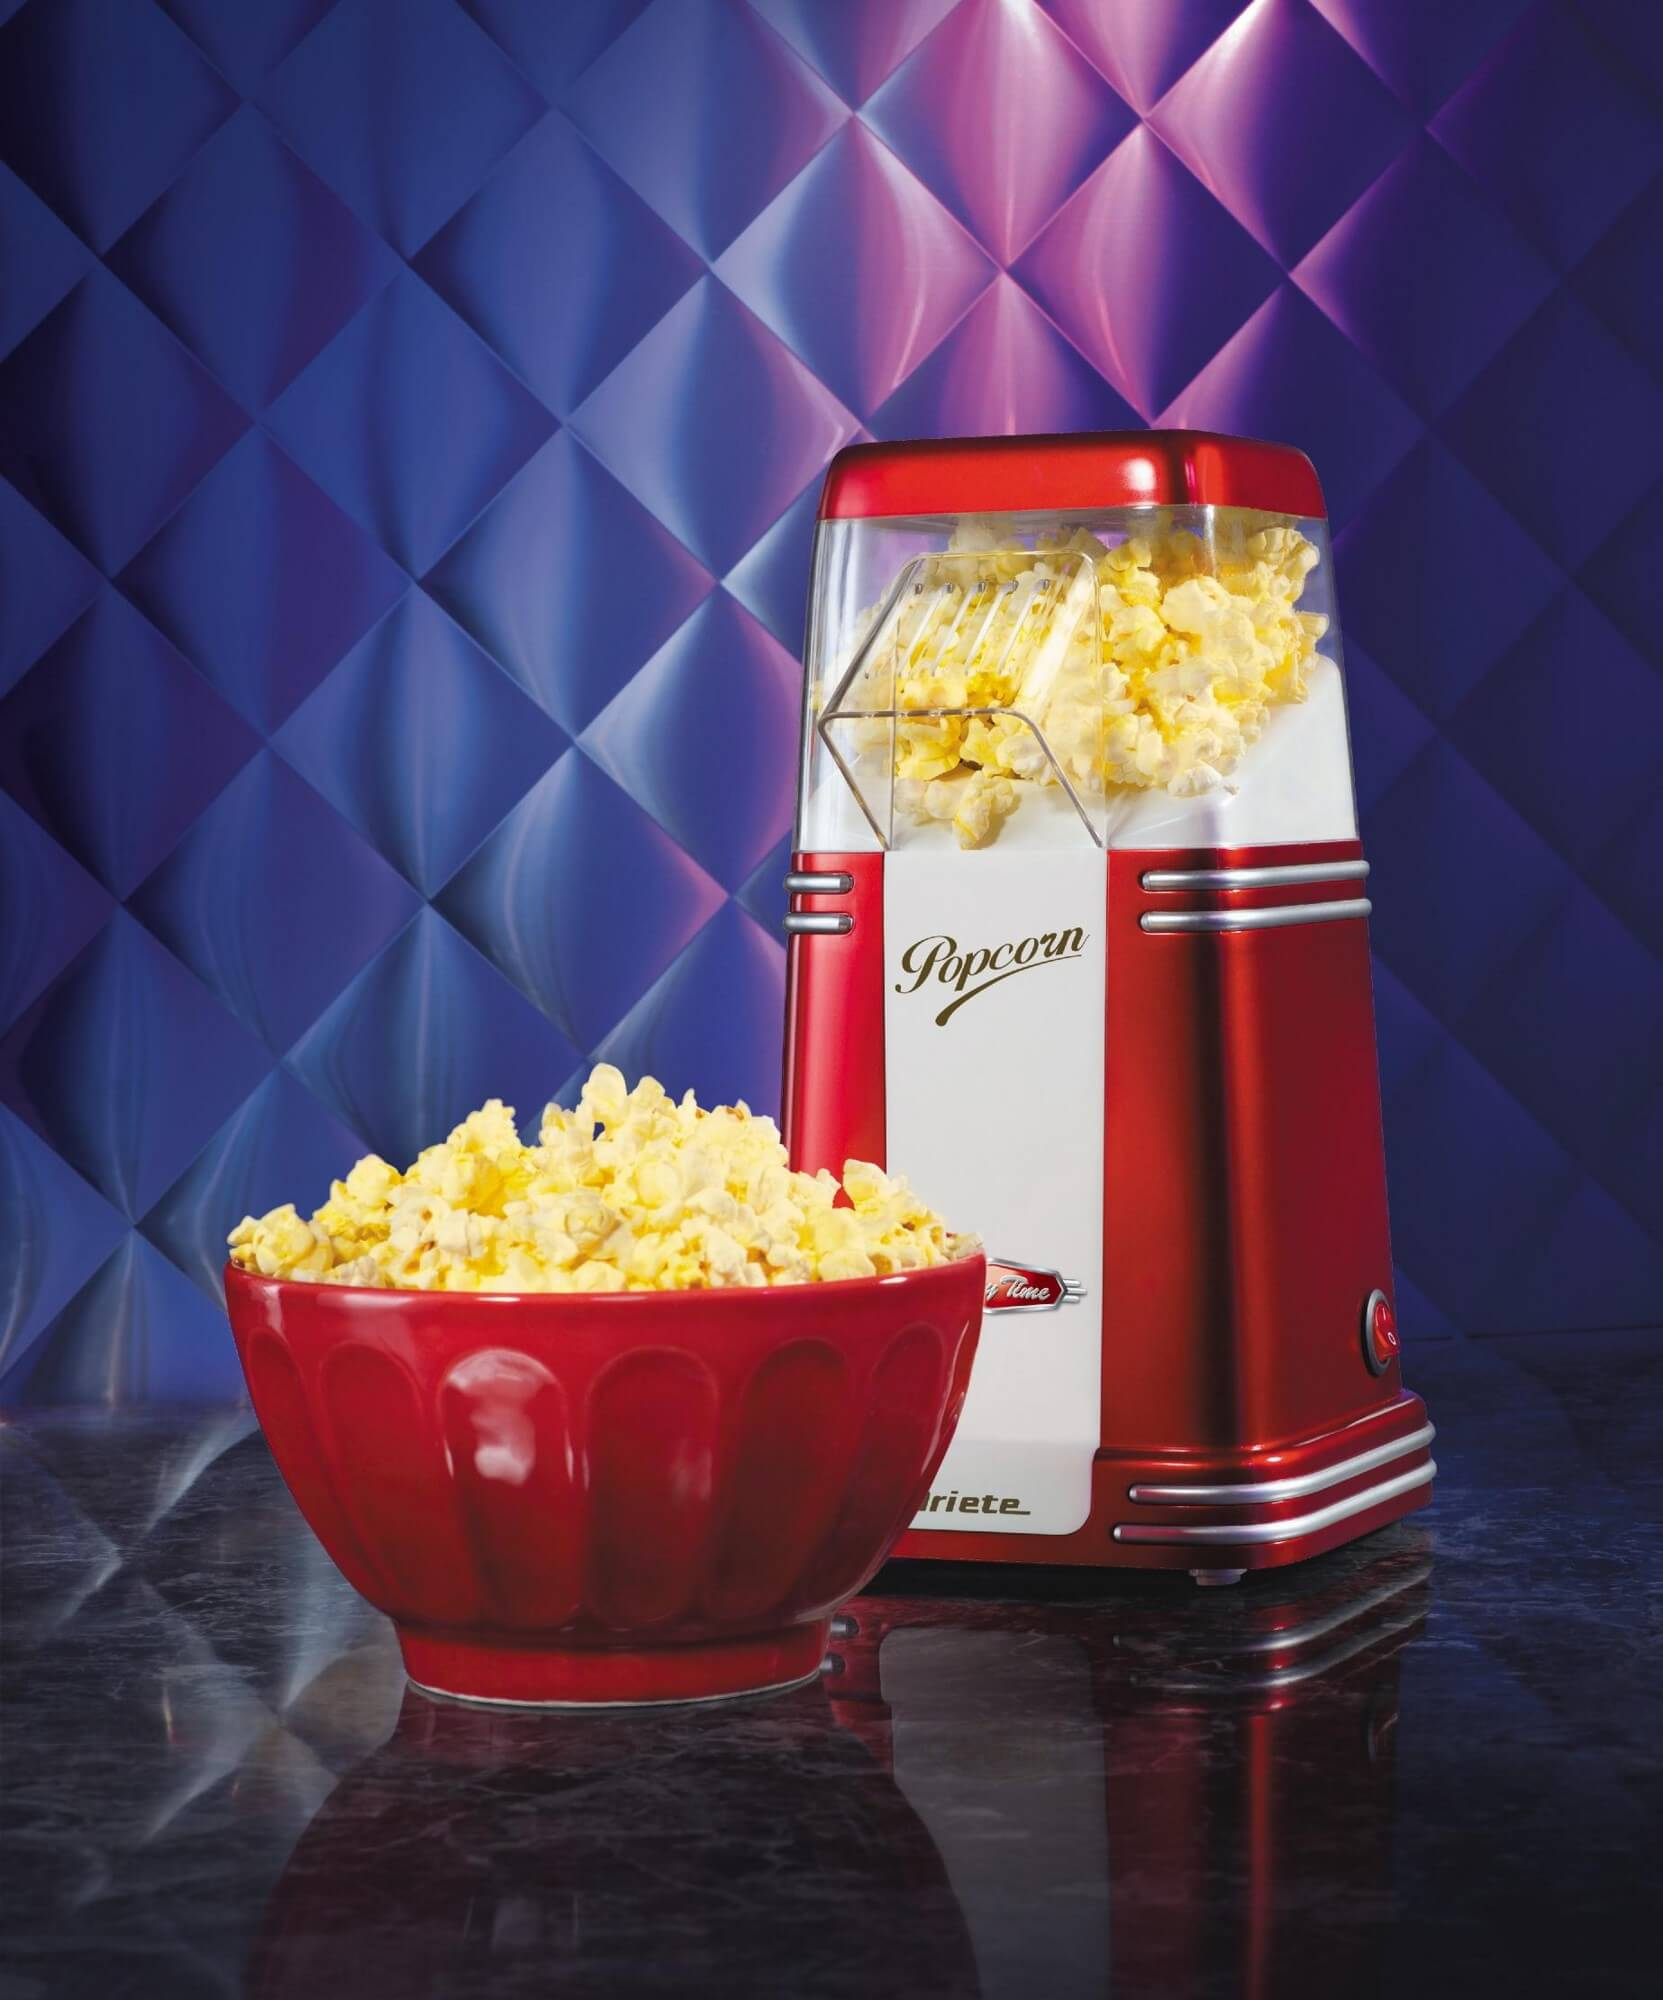 Ariete popcorn maker manual